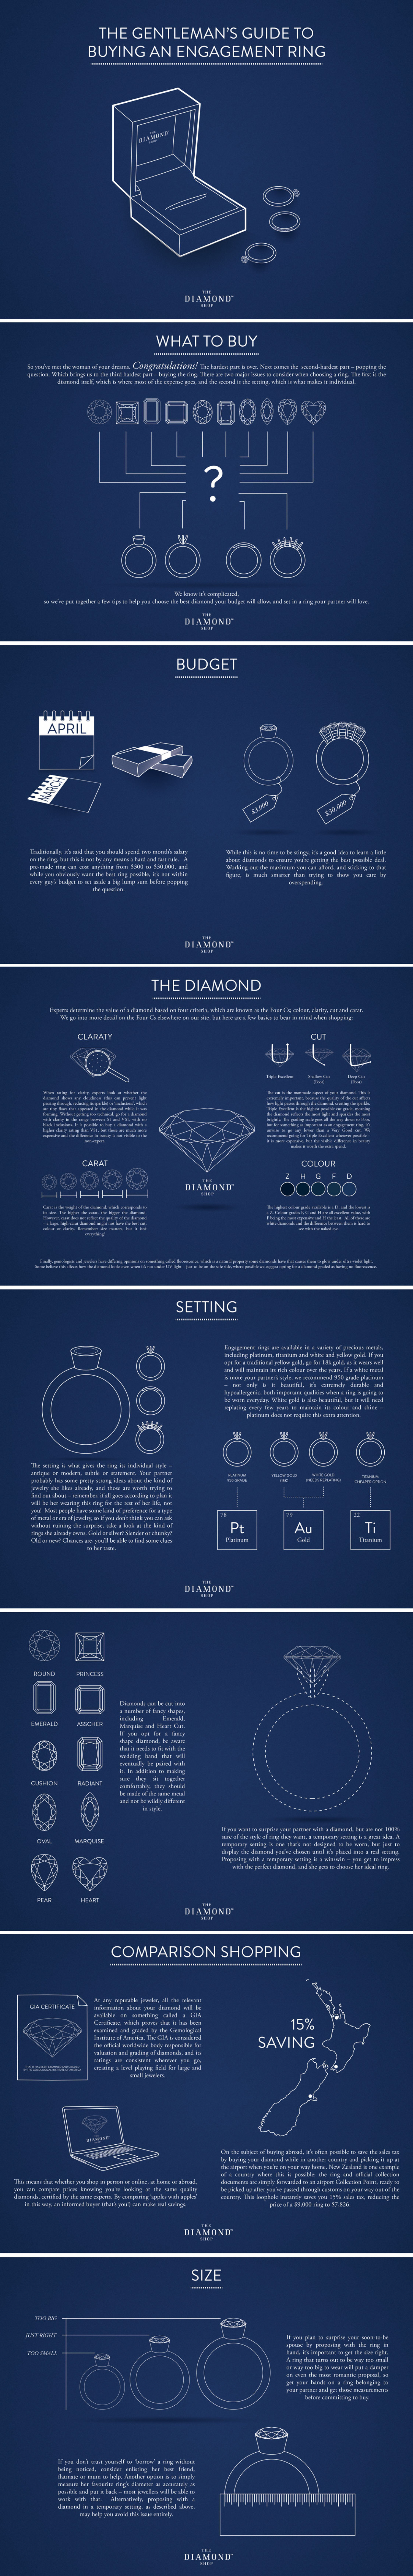 The Gentleman's Guide to Buying an Engagement Ring Infographic